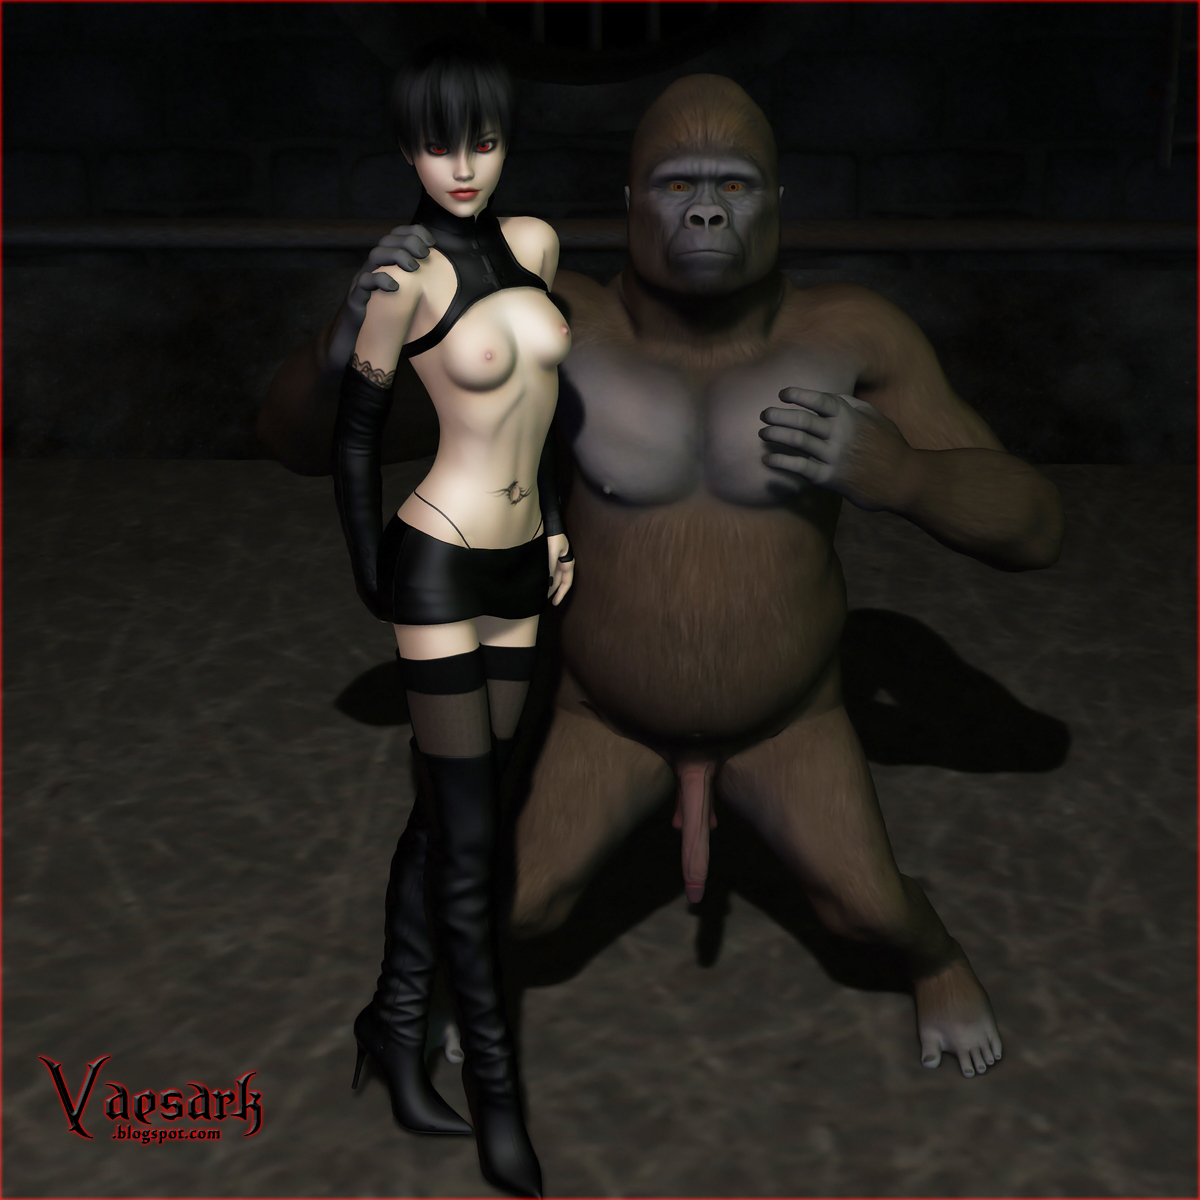 Have Pic of girl fucked by gorilla much